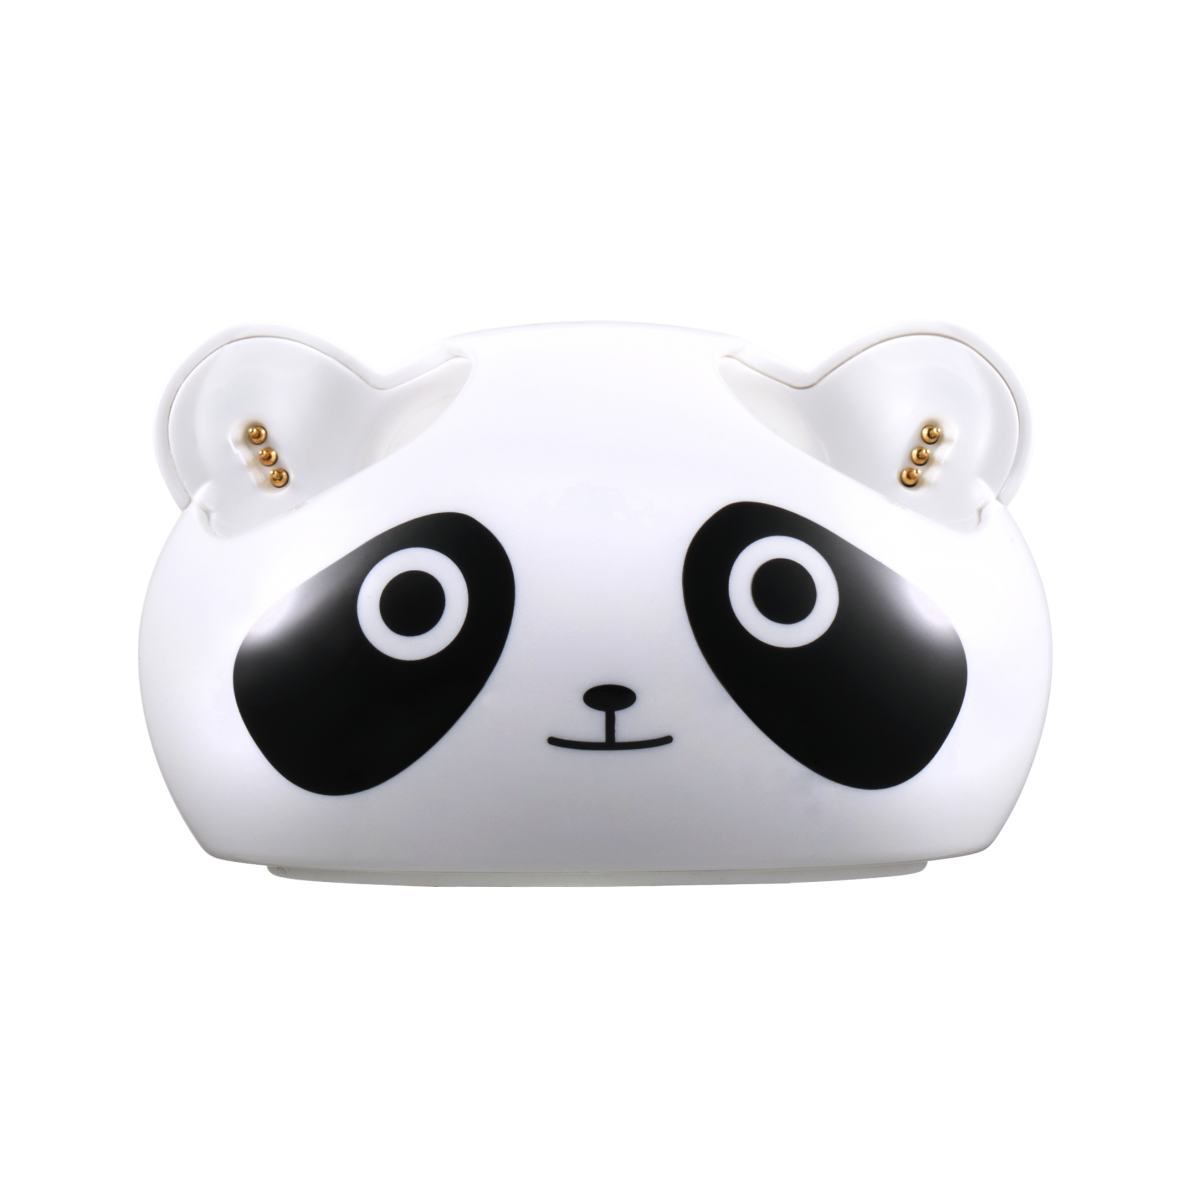 Panda ears png. Stereo in ear headphones